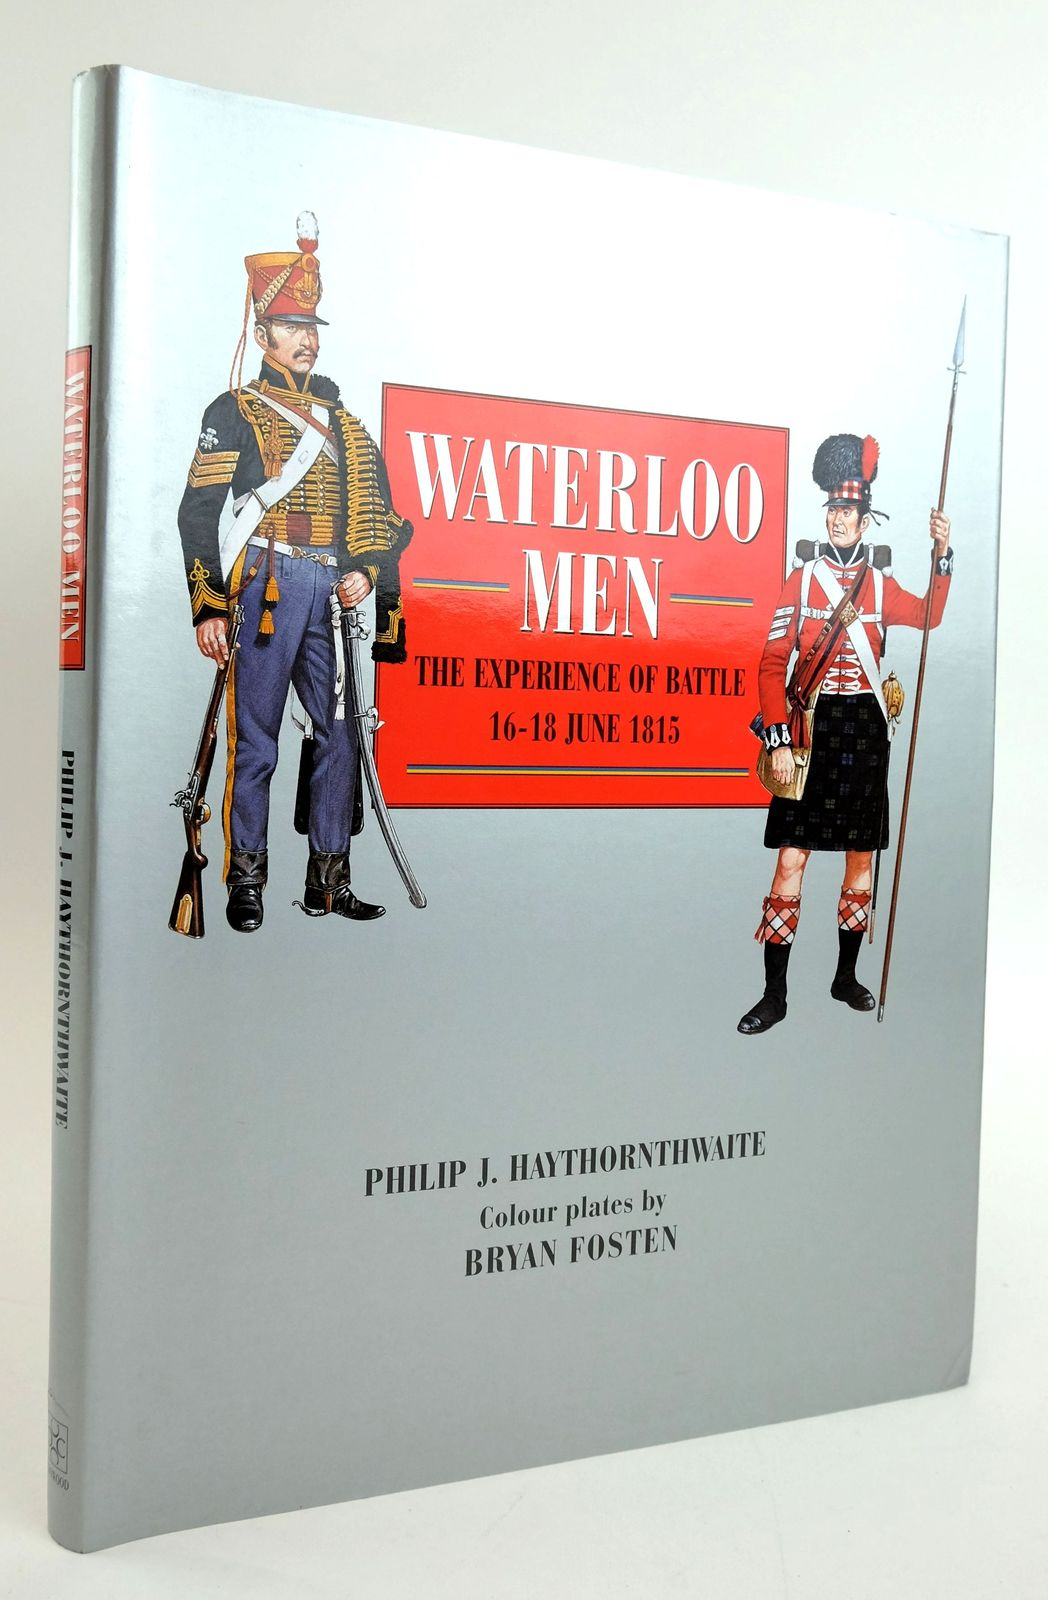 Photo of WATERLOO MEN: THE EXPERIENCE OF BATTLE 16-18 JUNE 1815 written by Haythornthwaite, Philip illustrated by Fosten, Bryan published by The Crowood Press (STOCK CODE: 1820043)  for sale by Stella & Rose's Books